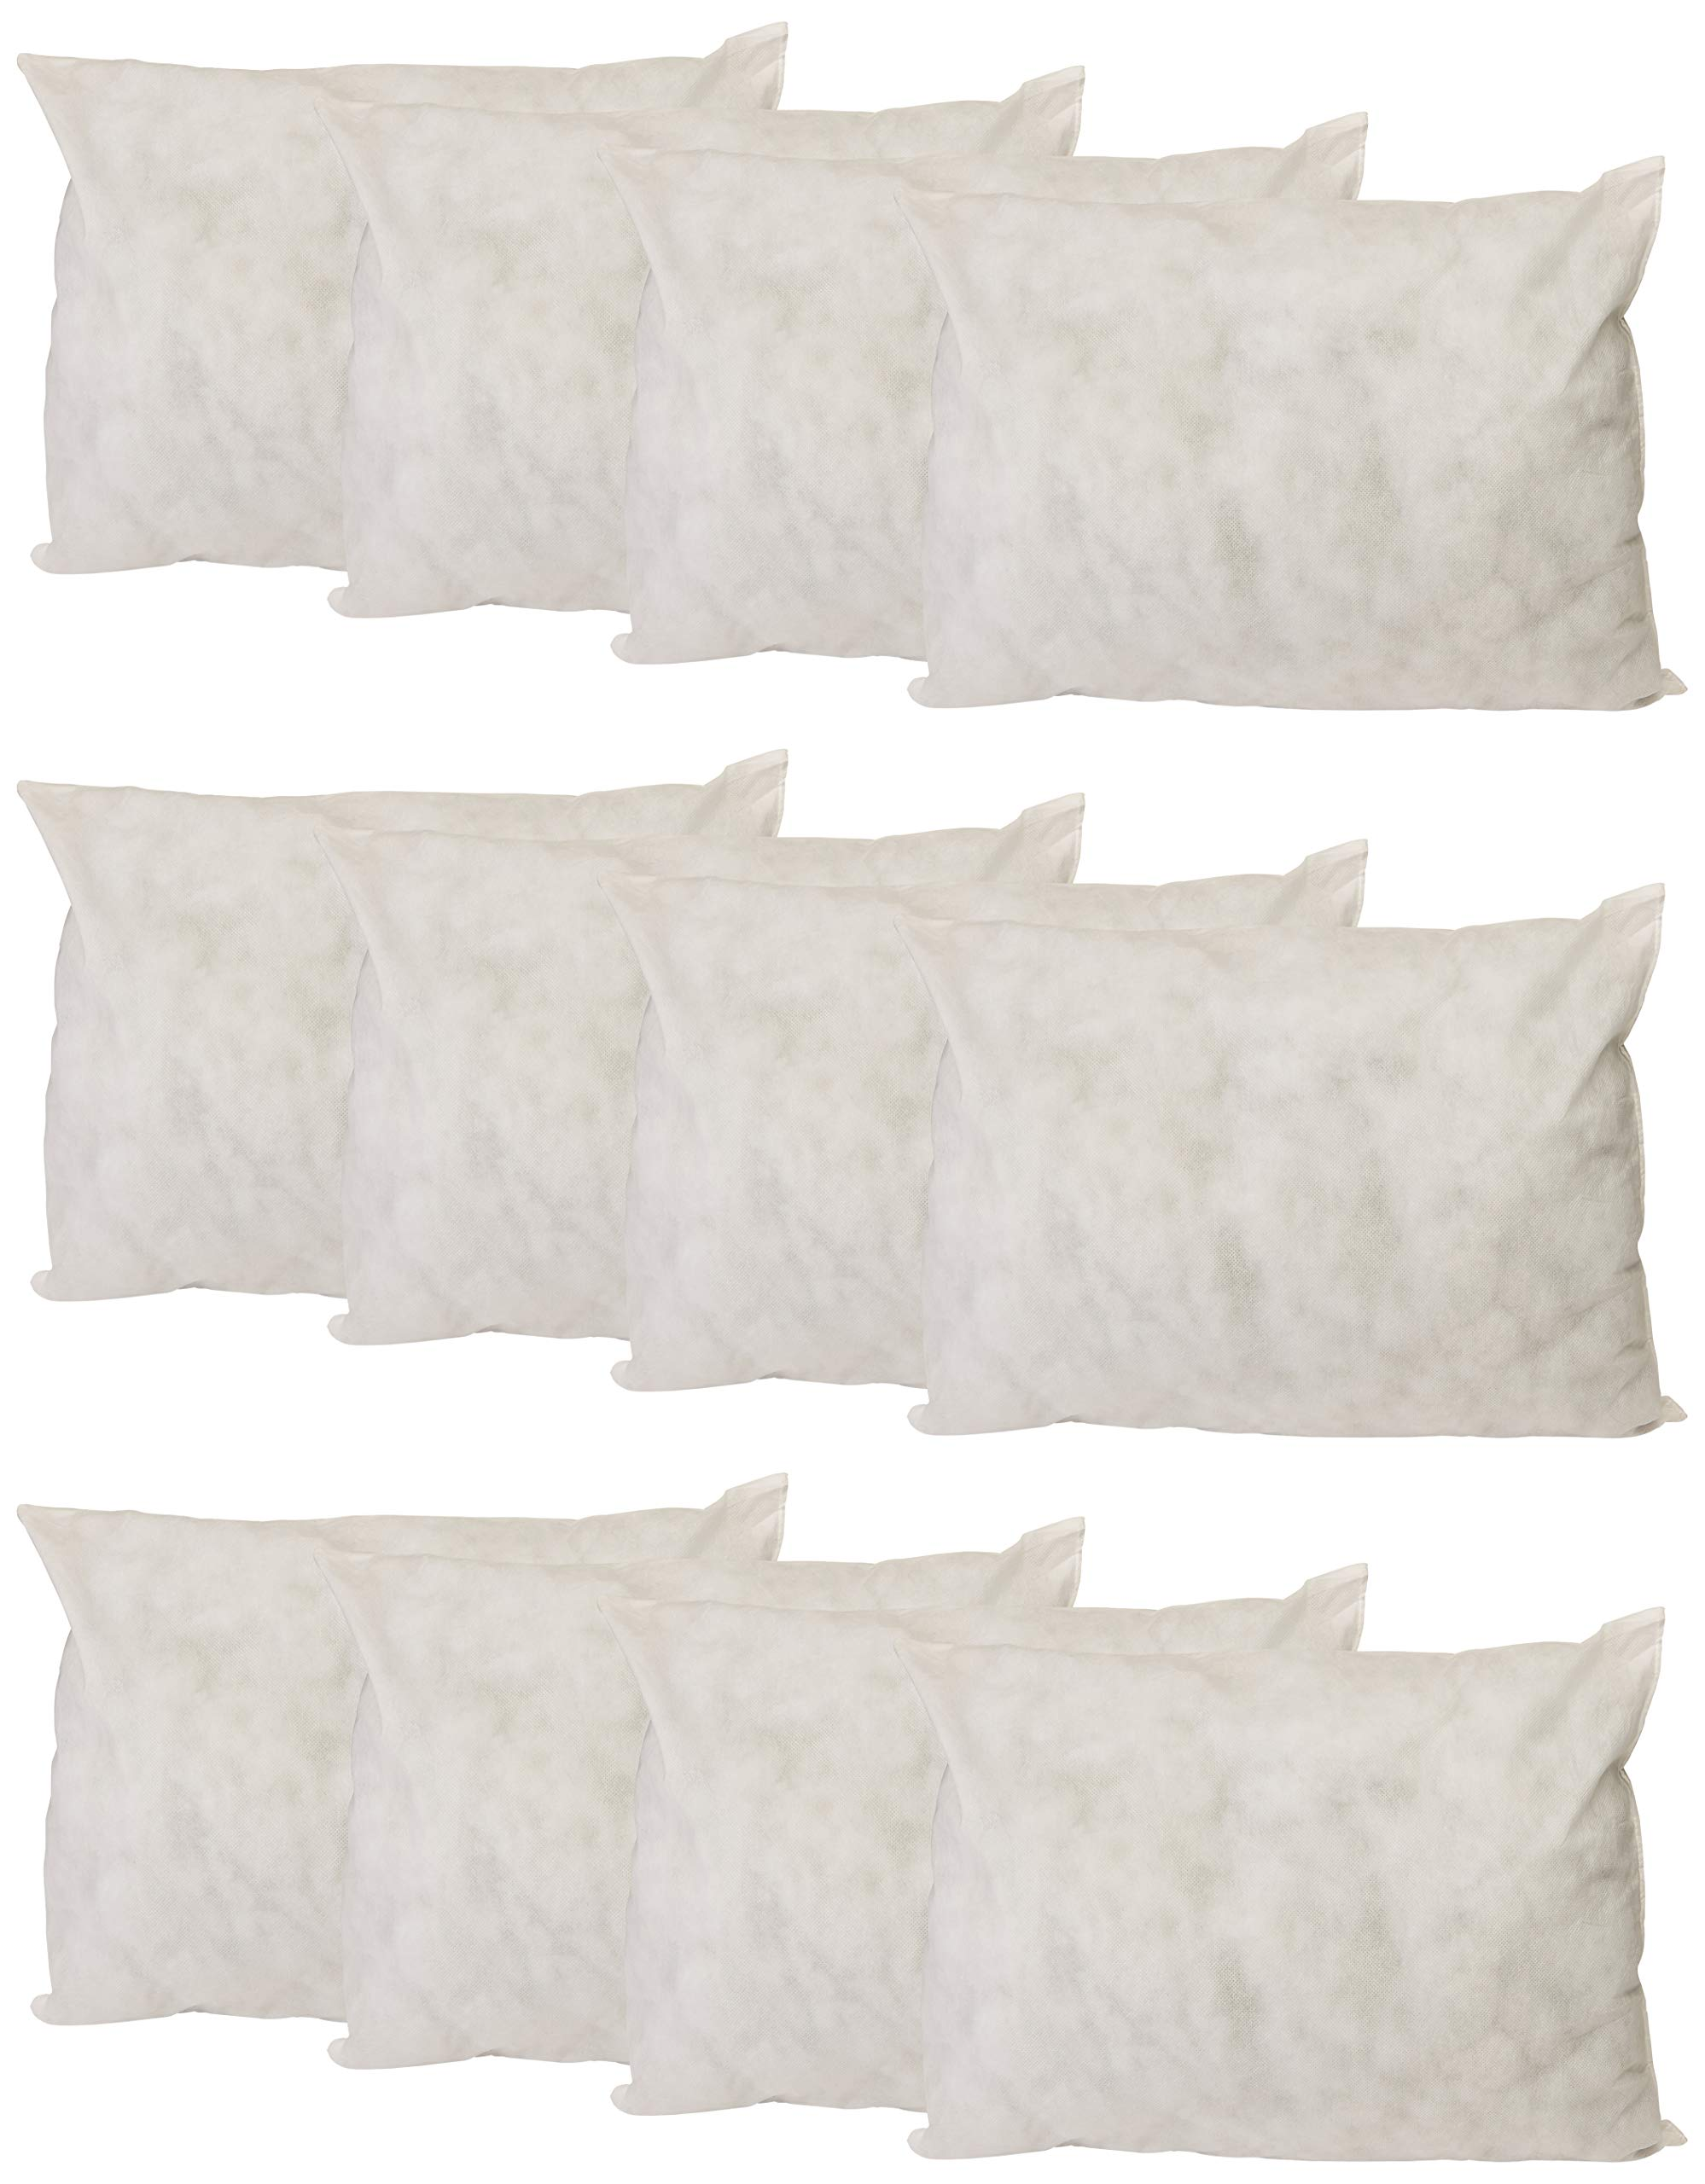 Medline NON24390 Classic Disposable Pillows, 18'' x 24'', White (Pack of 12)